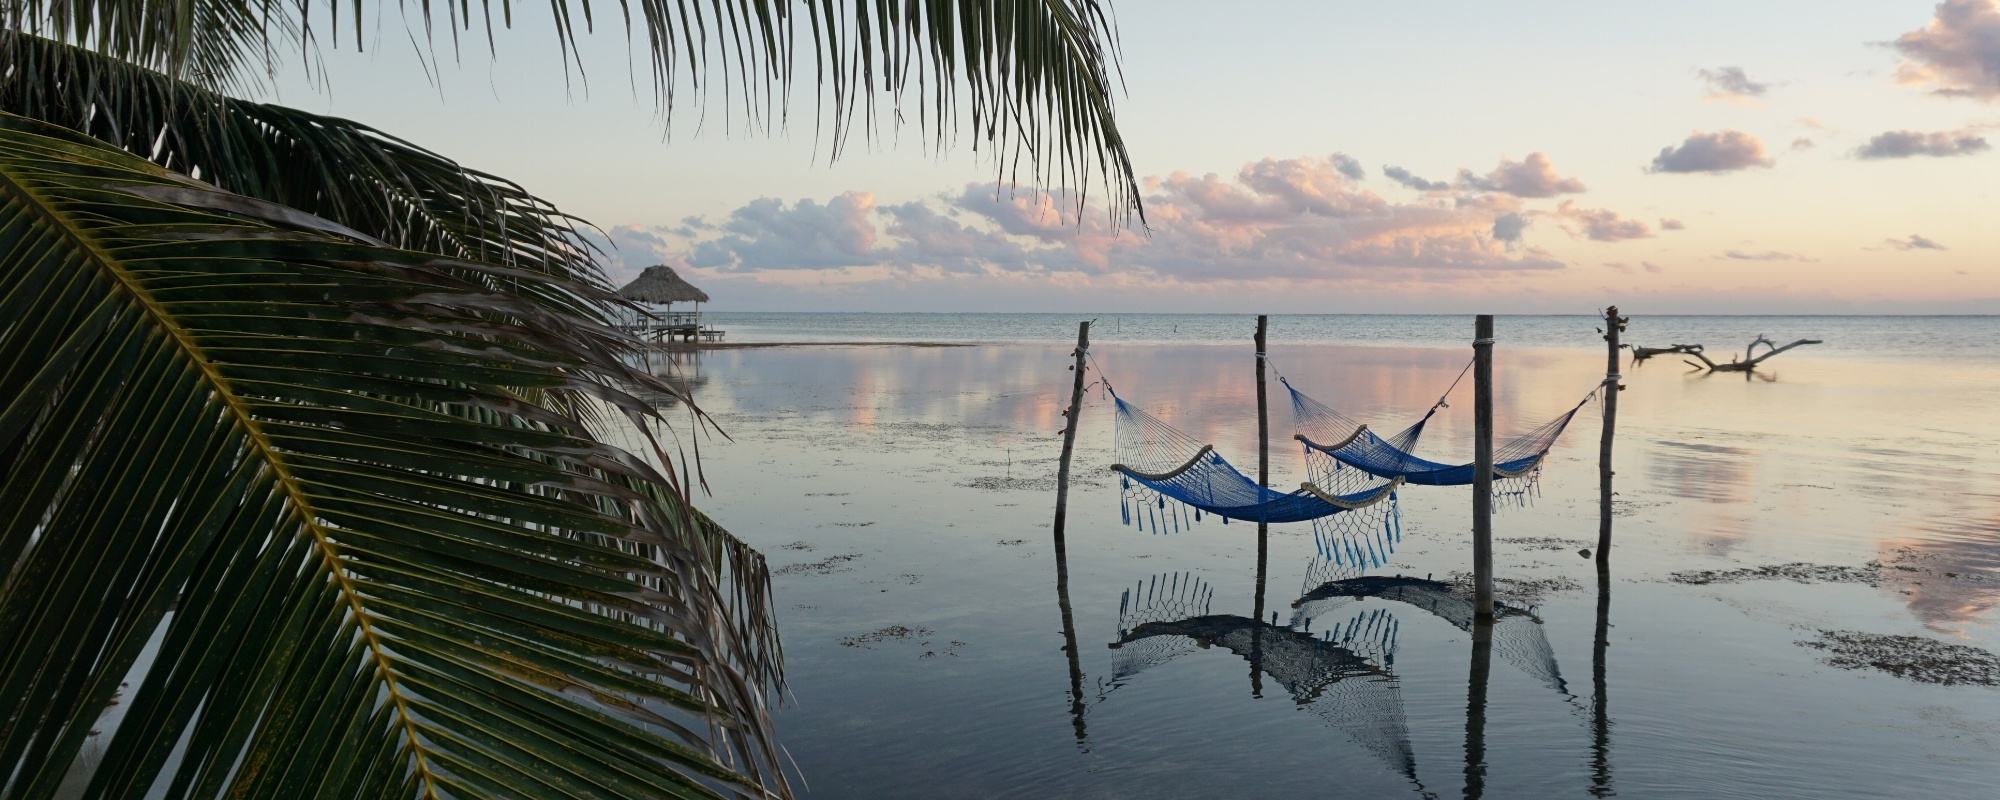 hammocks-in-belize.jpg